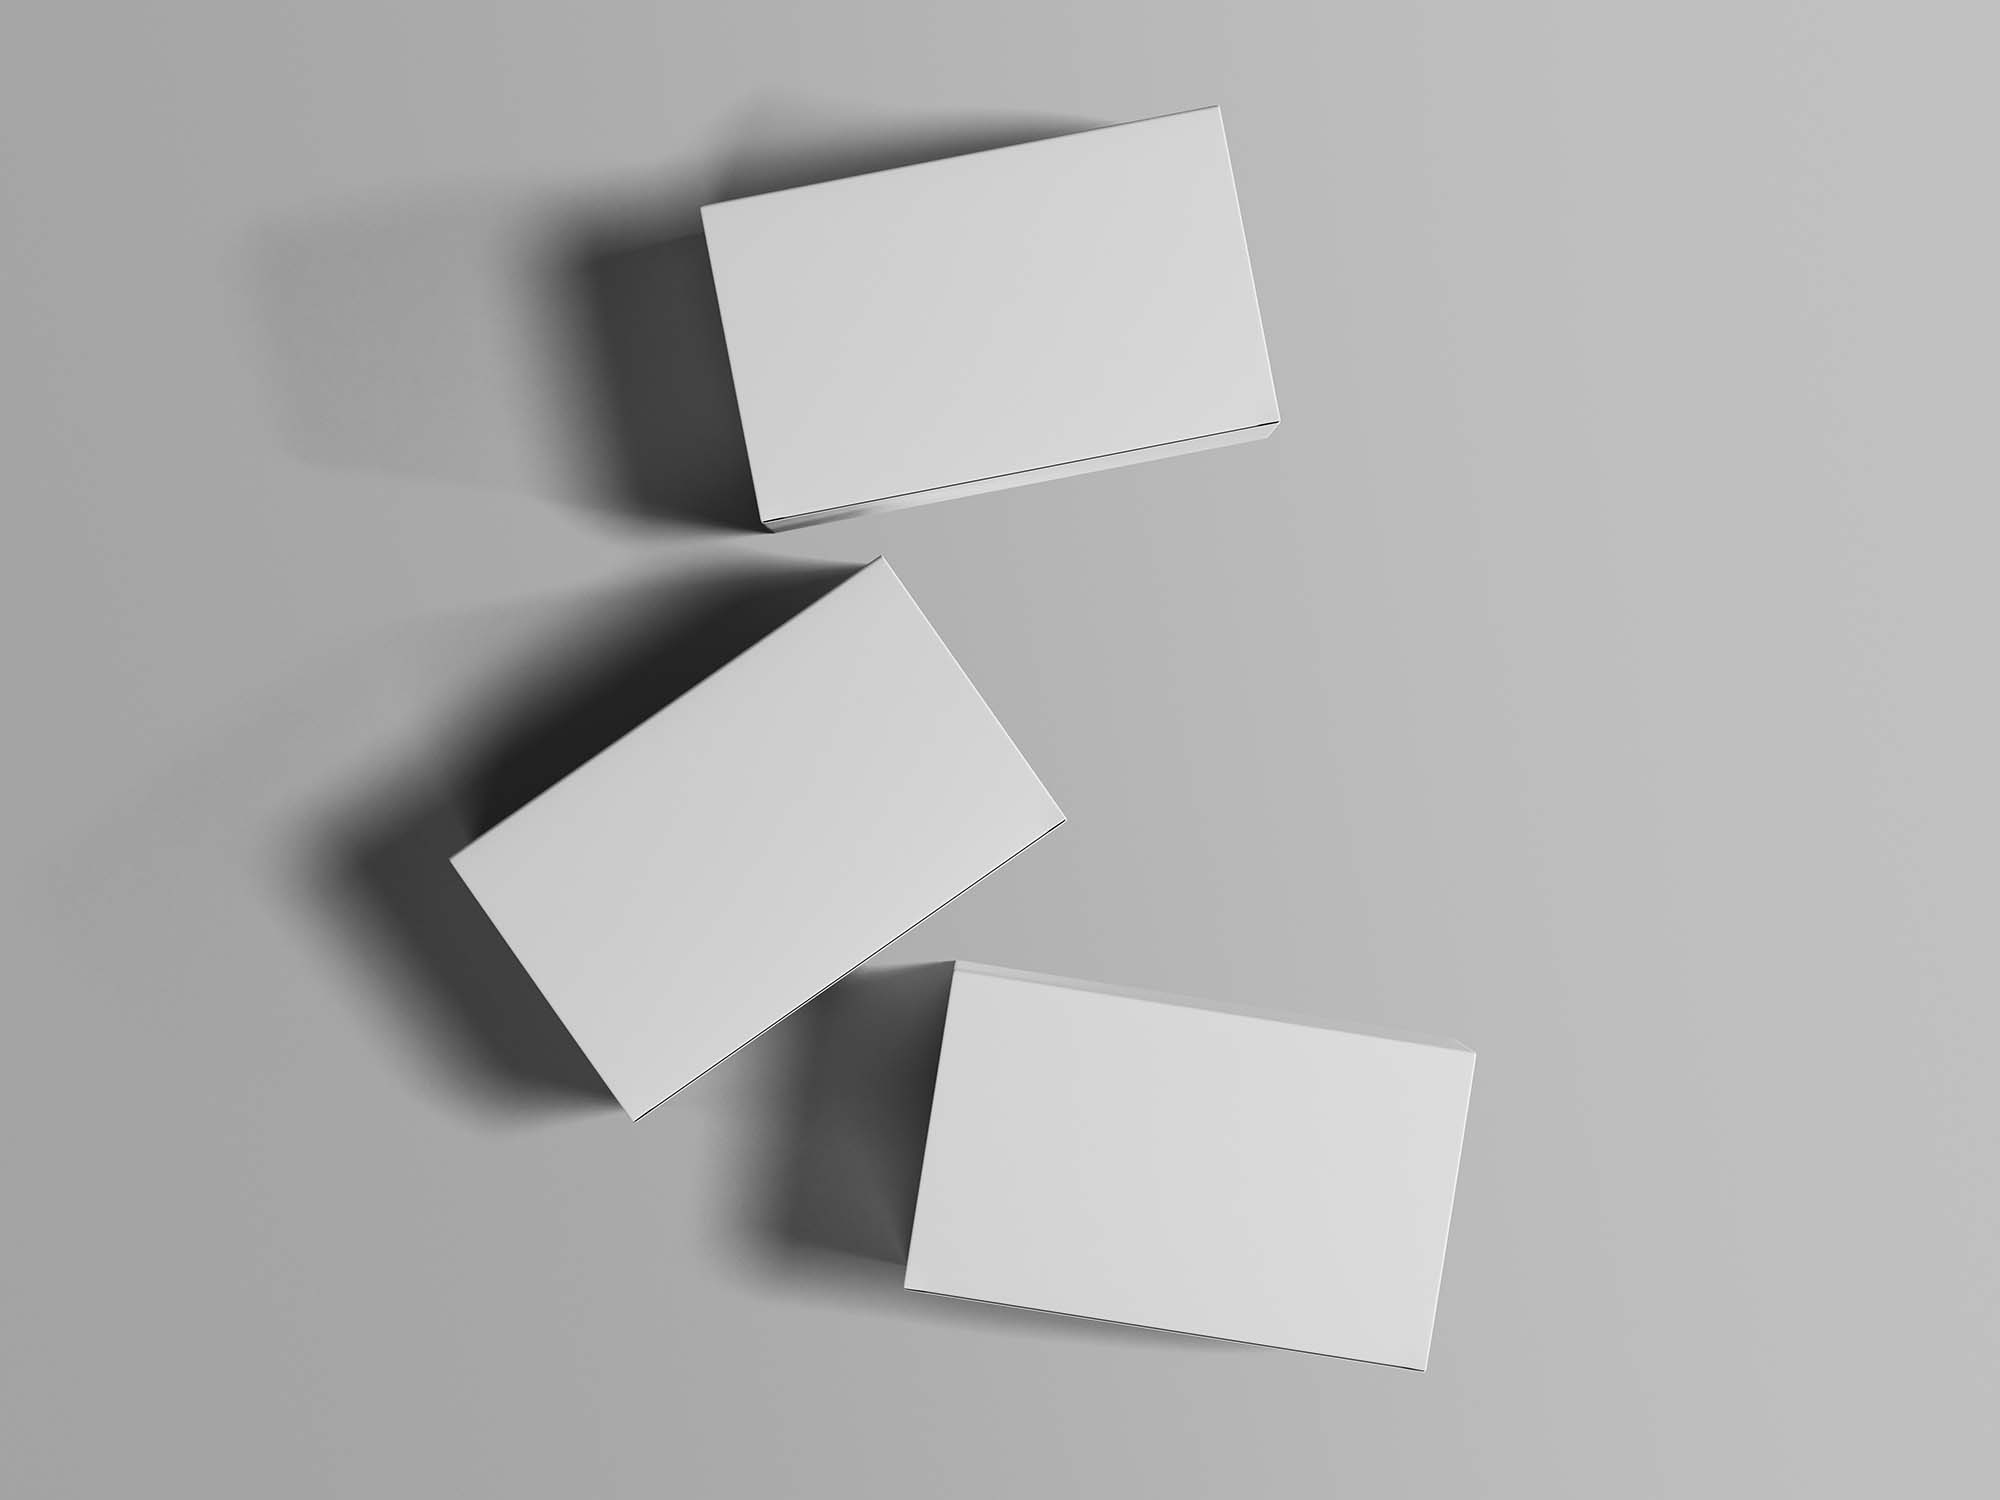 Top View Box Packages Mockup 2